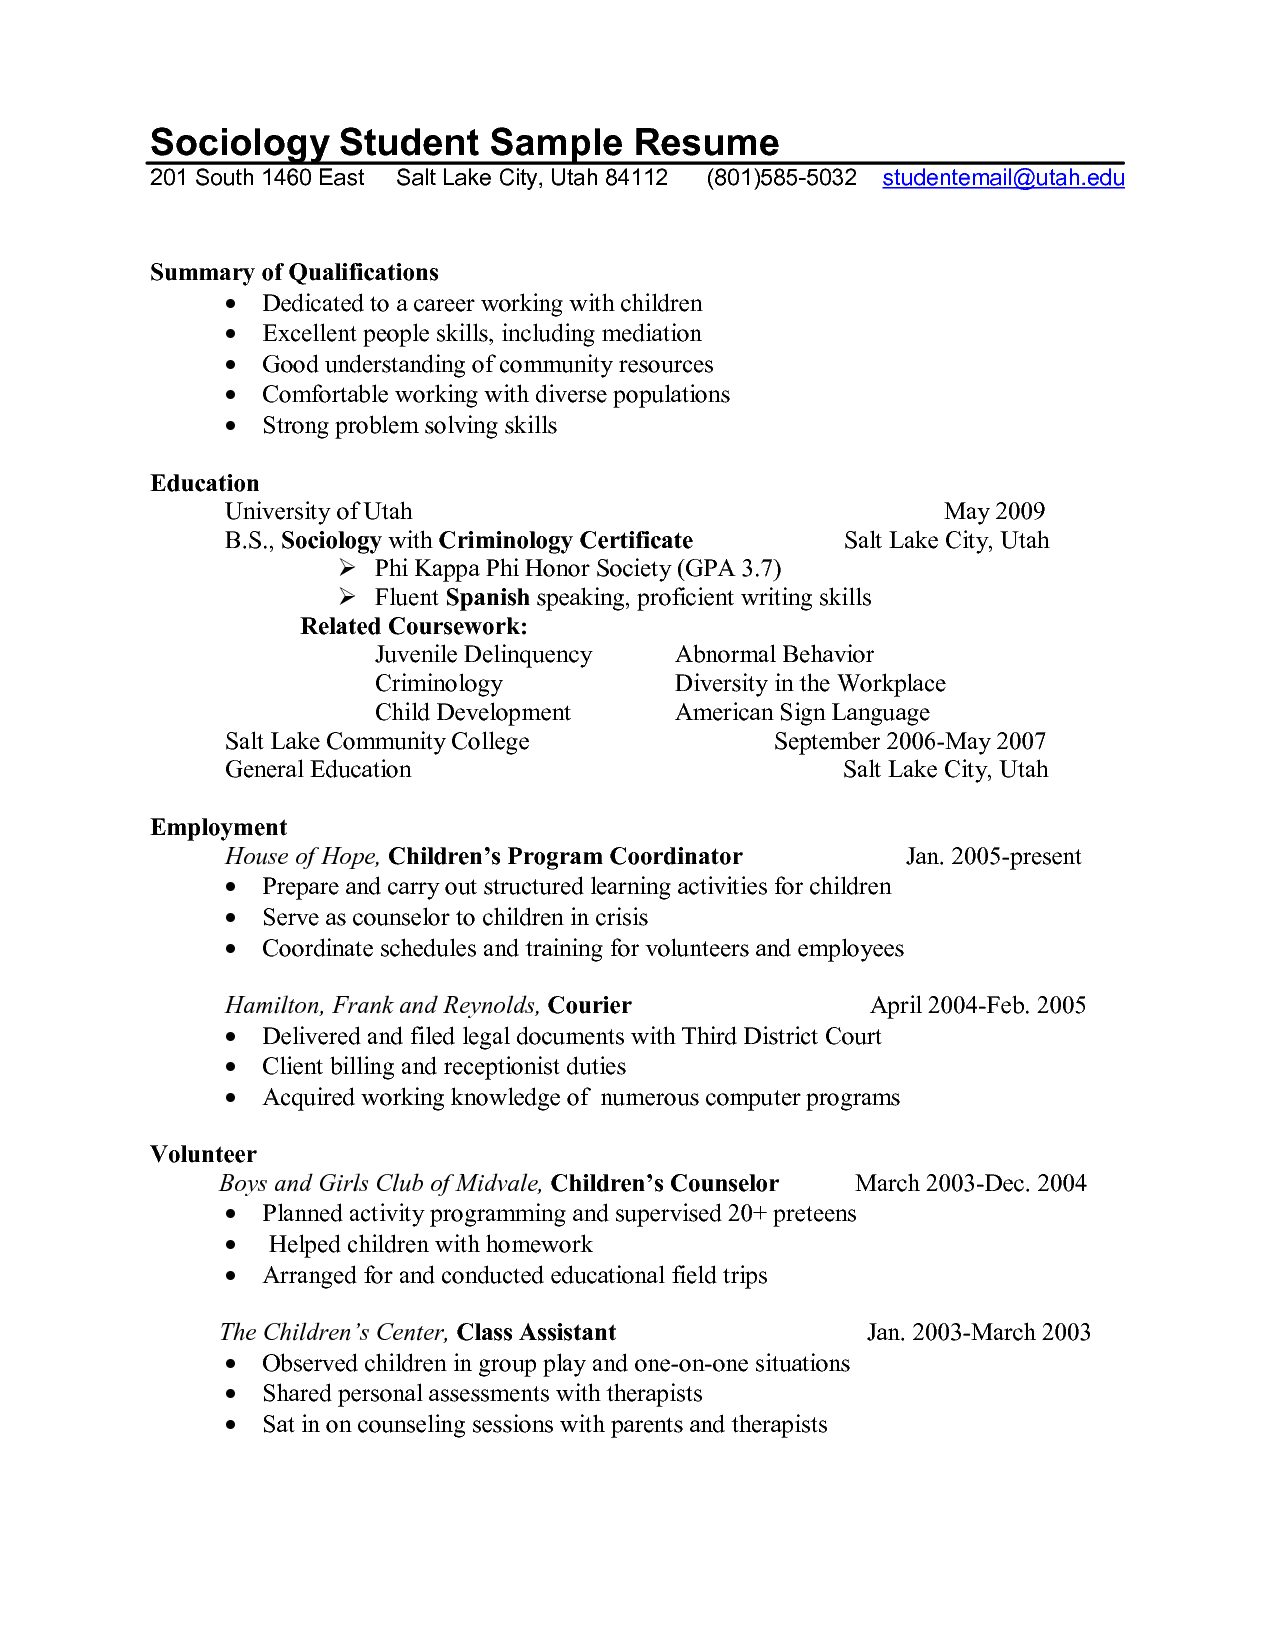 Rehab Counselor Resume Pinterest  College Counselor Resume